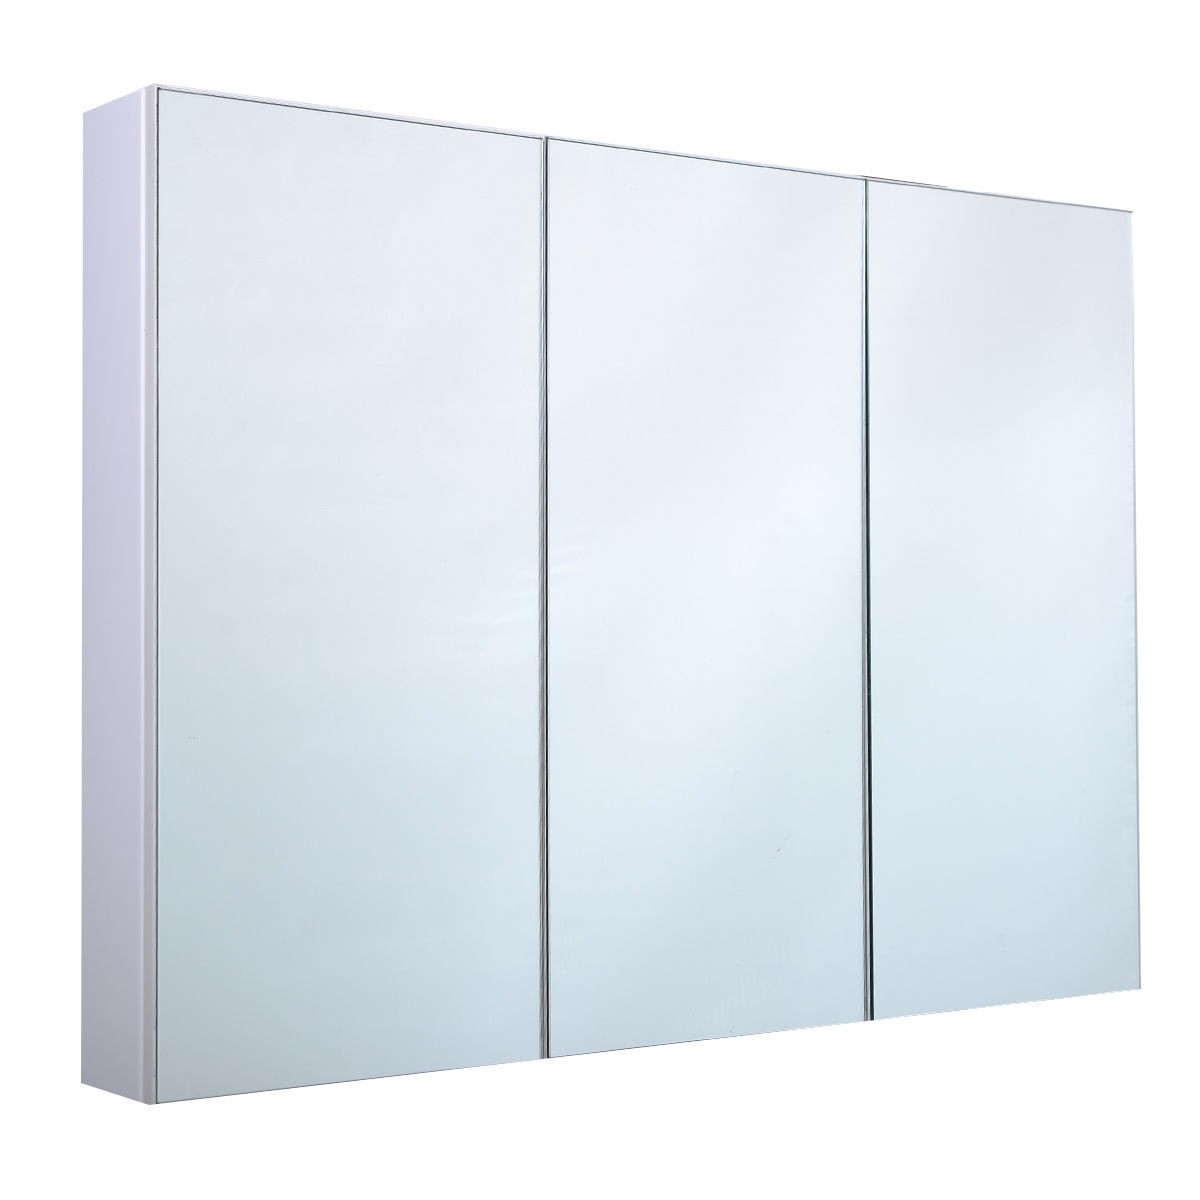 Bathroom mirror dimensions - 3 Mirror Door 36 Quot 20 Quot Wide Wall Mount Mirrored Bathroom